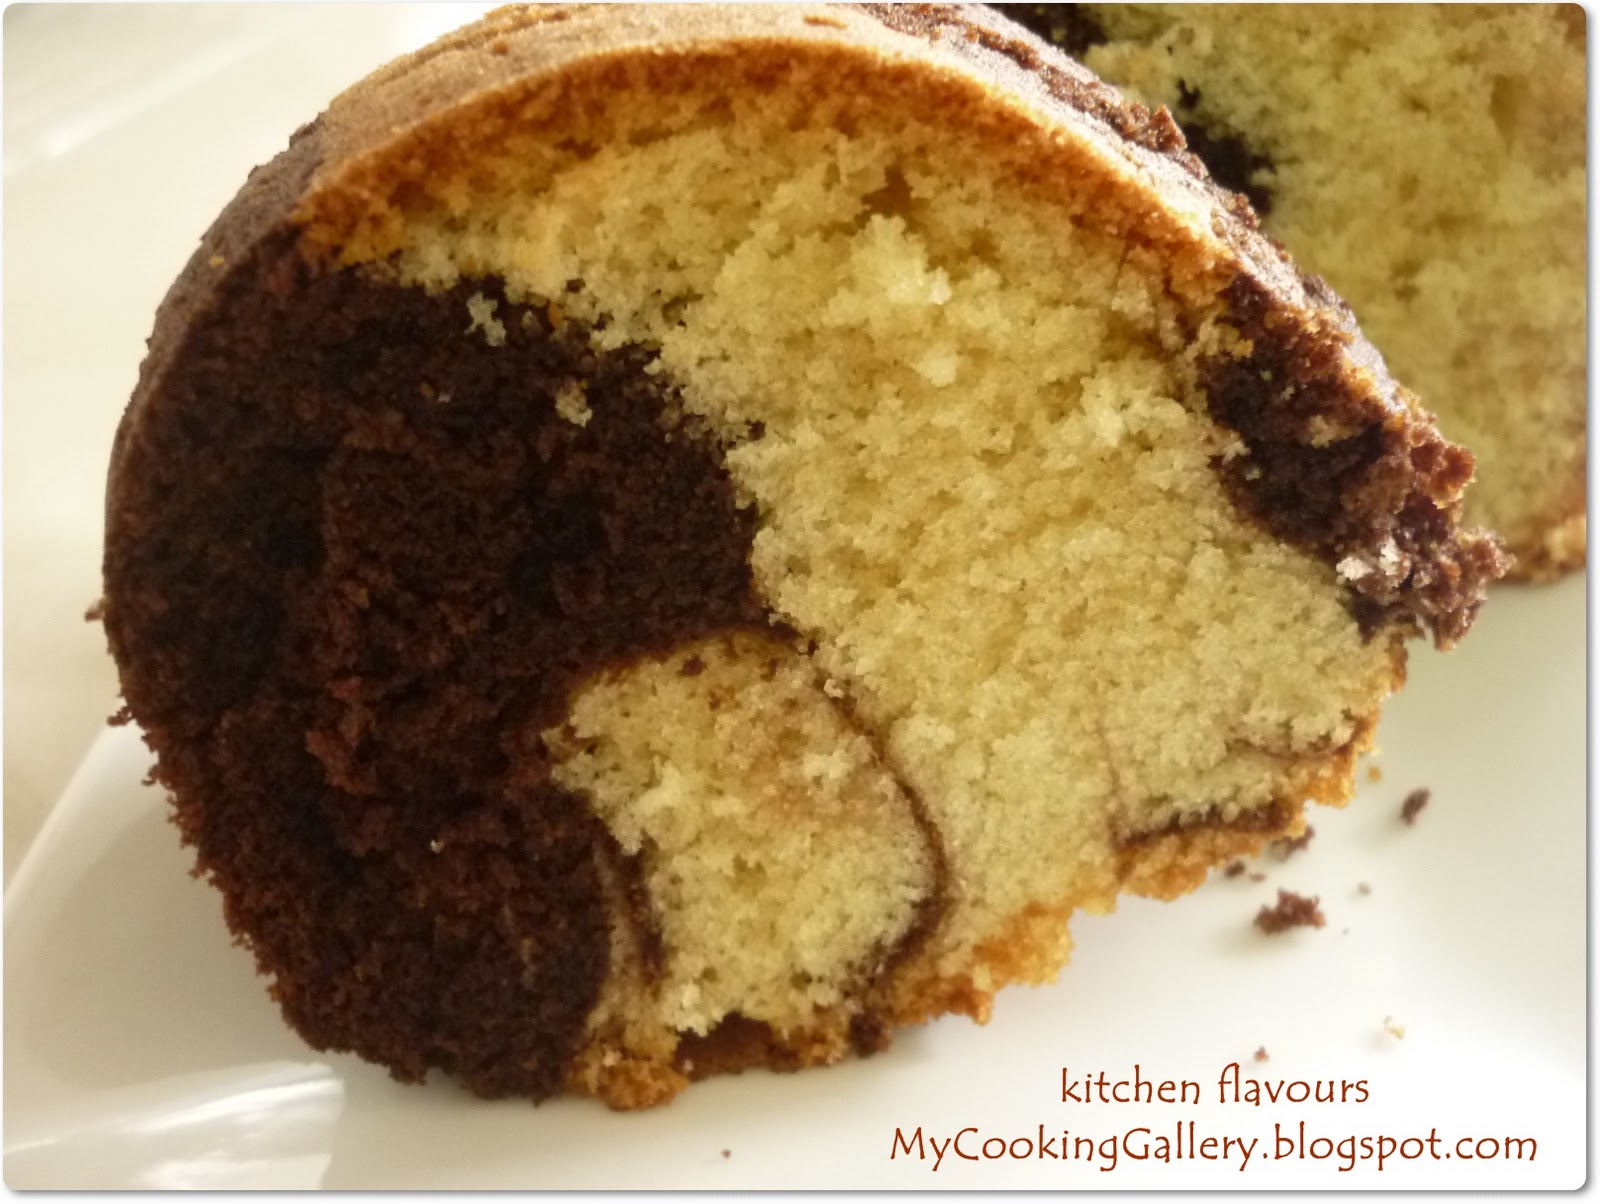 kitchen flavours: Marble Cake